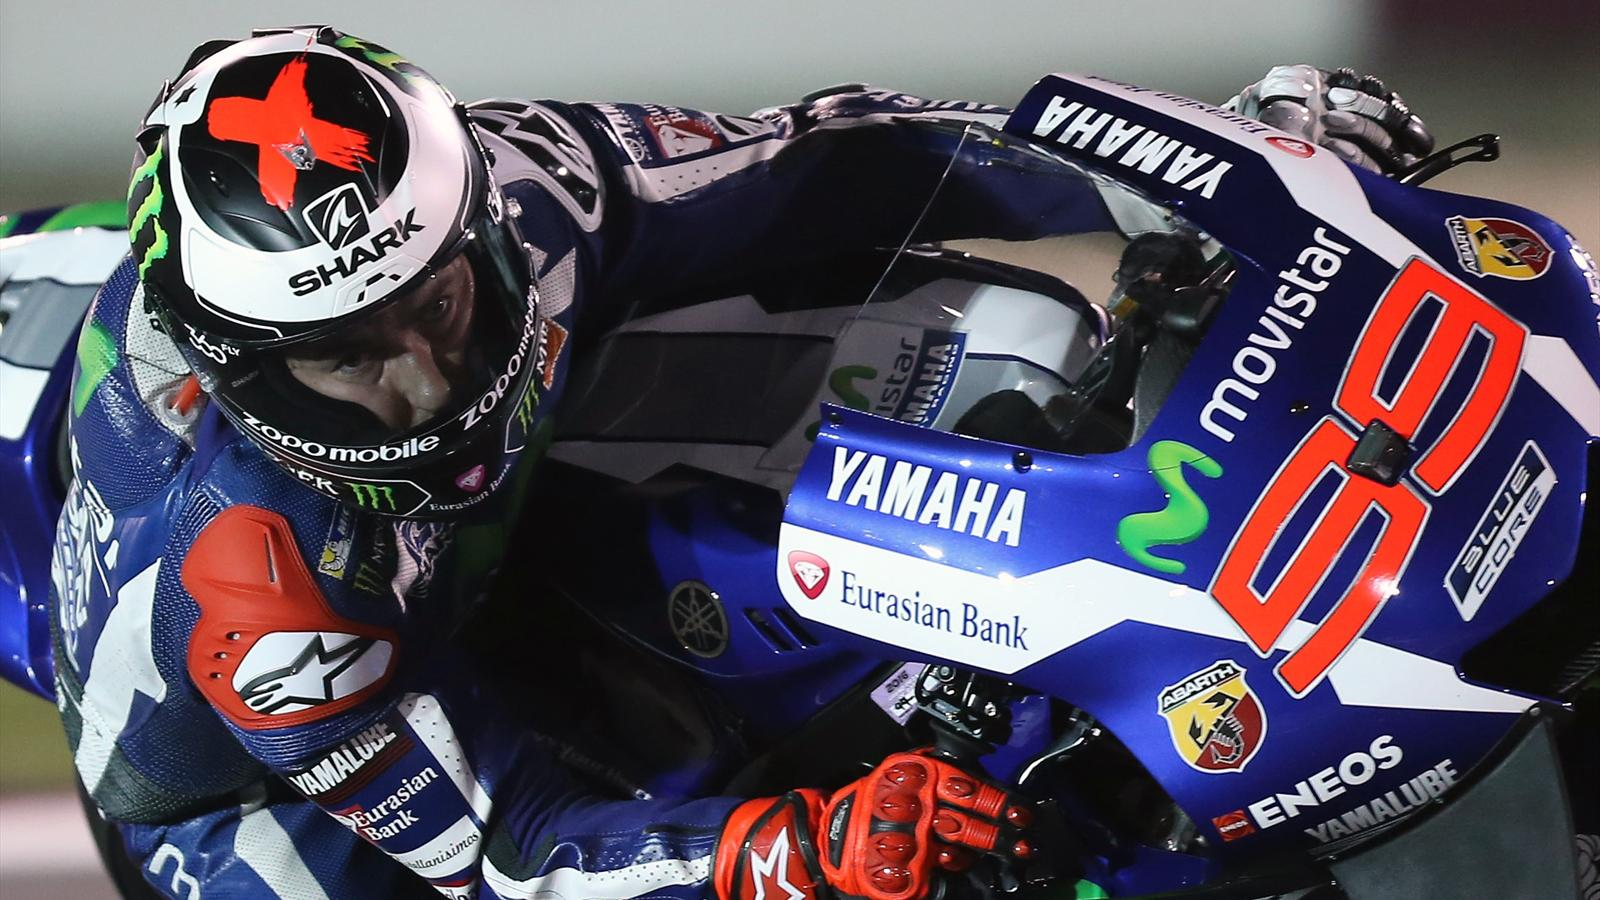 jorge lorenzo yamaha remporte la course motogp grand prix du qatar 2016 moto eurosport. Black Bedroom Furniture Sets. Home Design Ideas